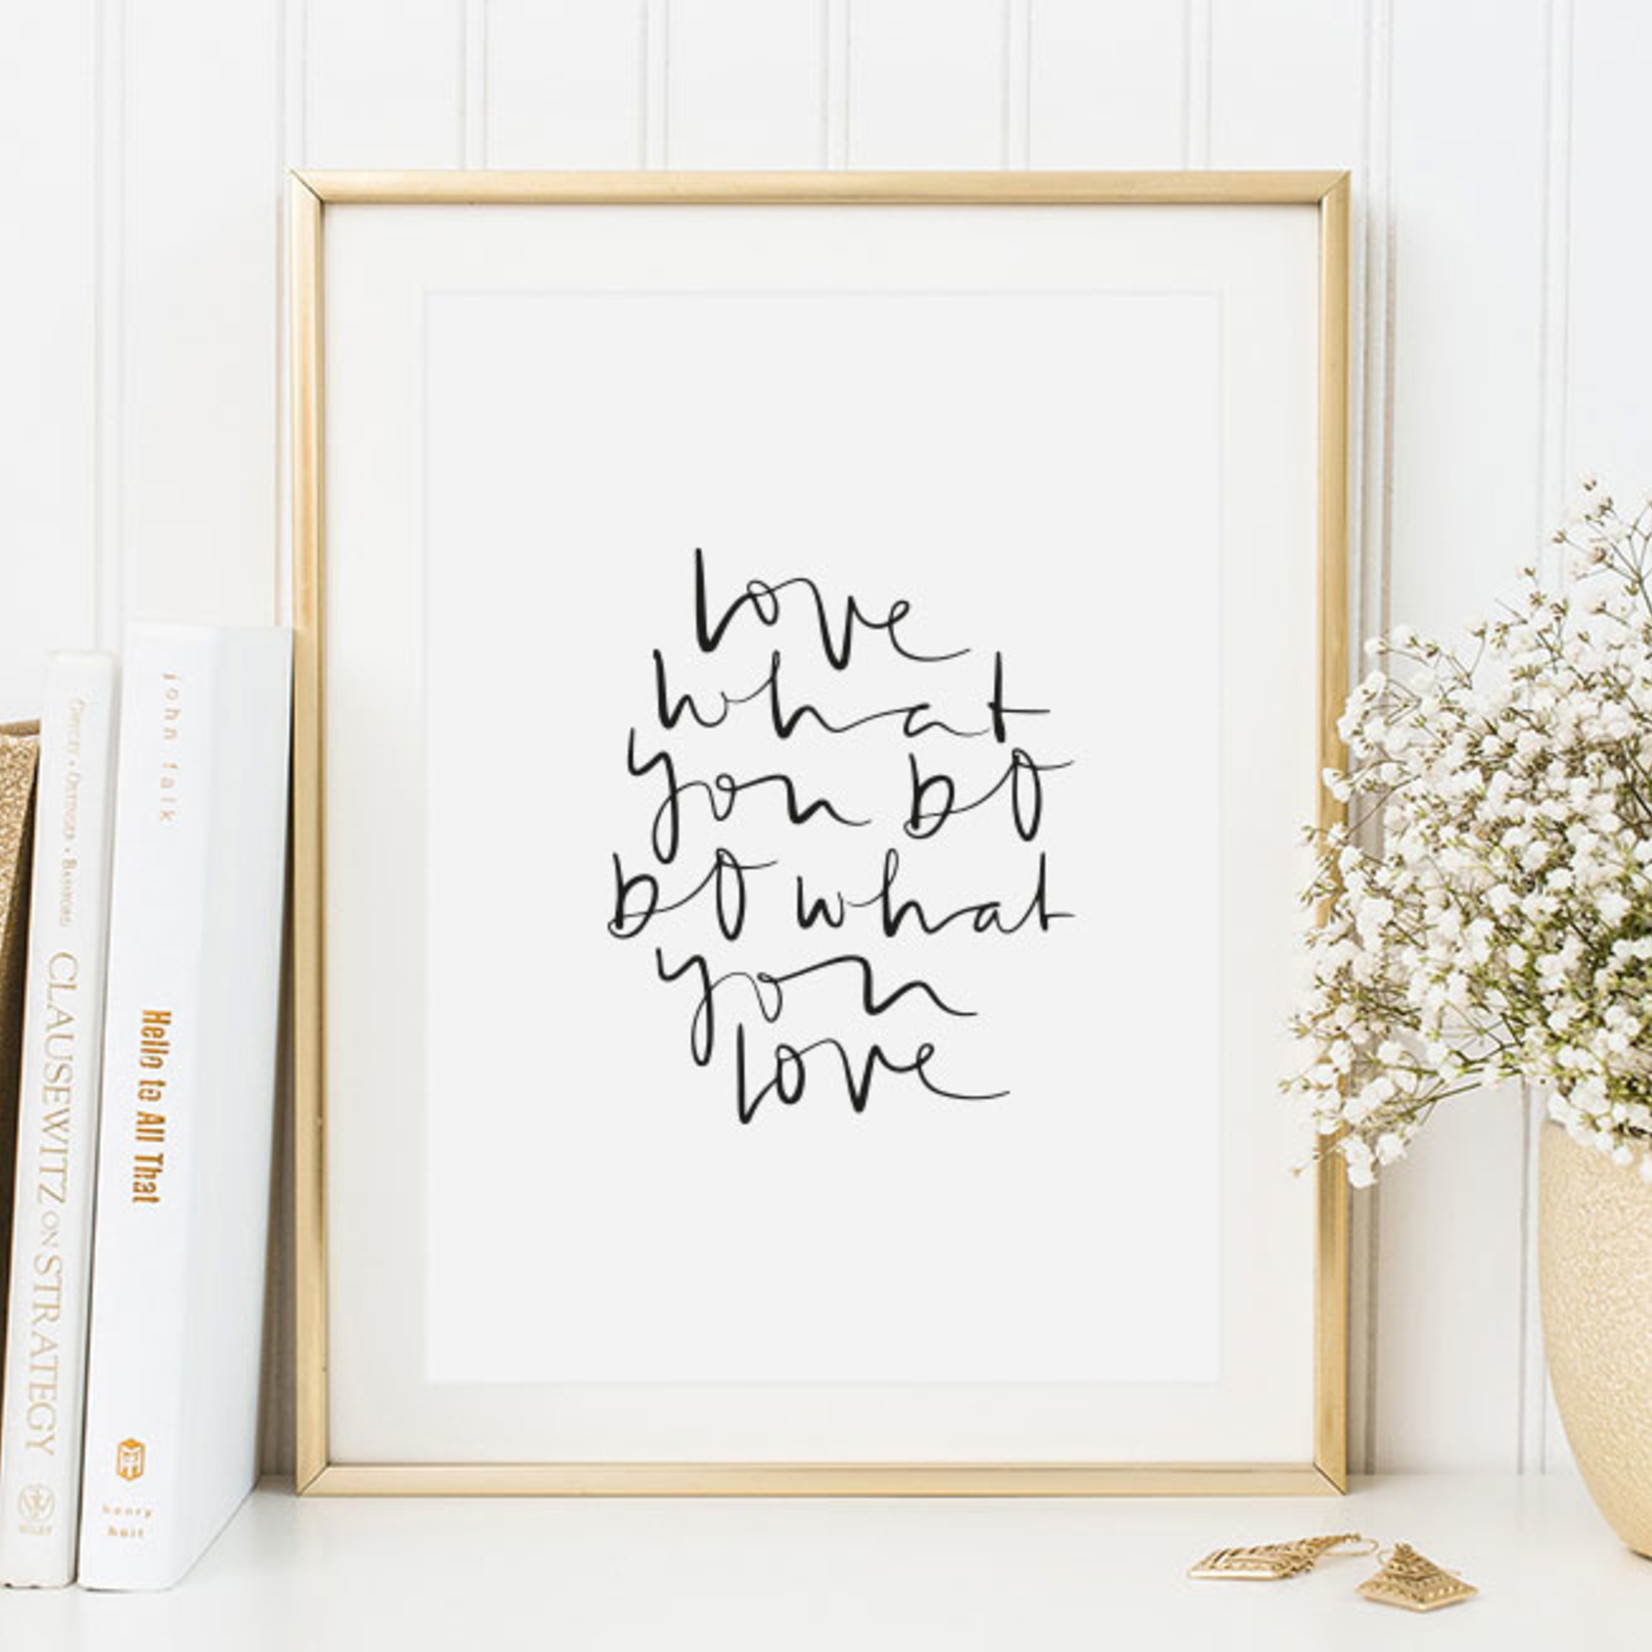 Tales by Jen Poster - Love what you do, do what you love - A4